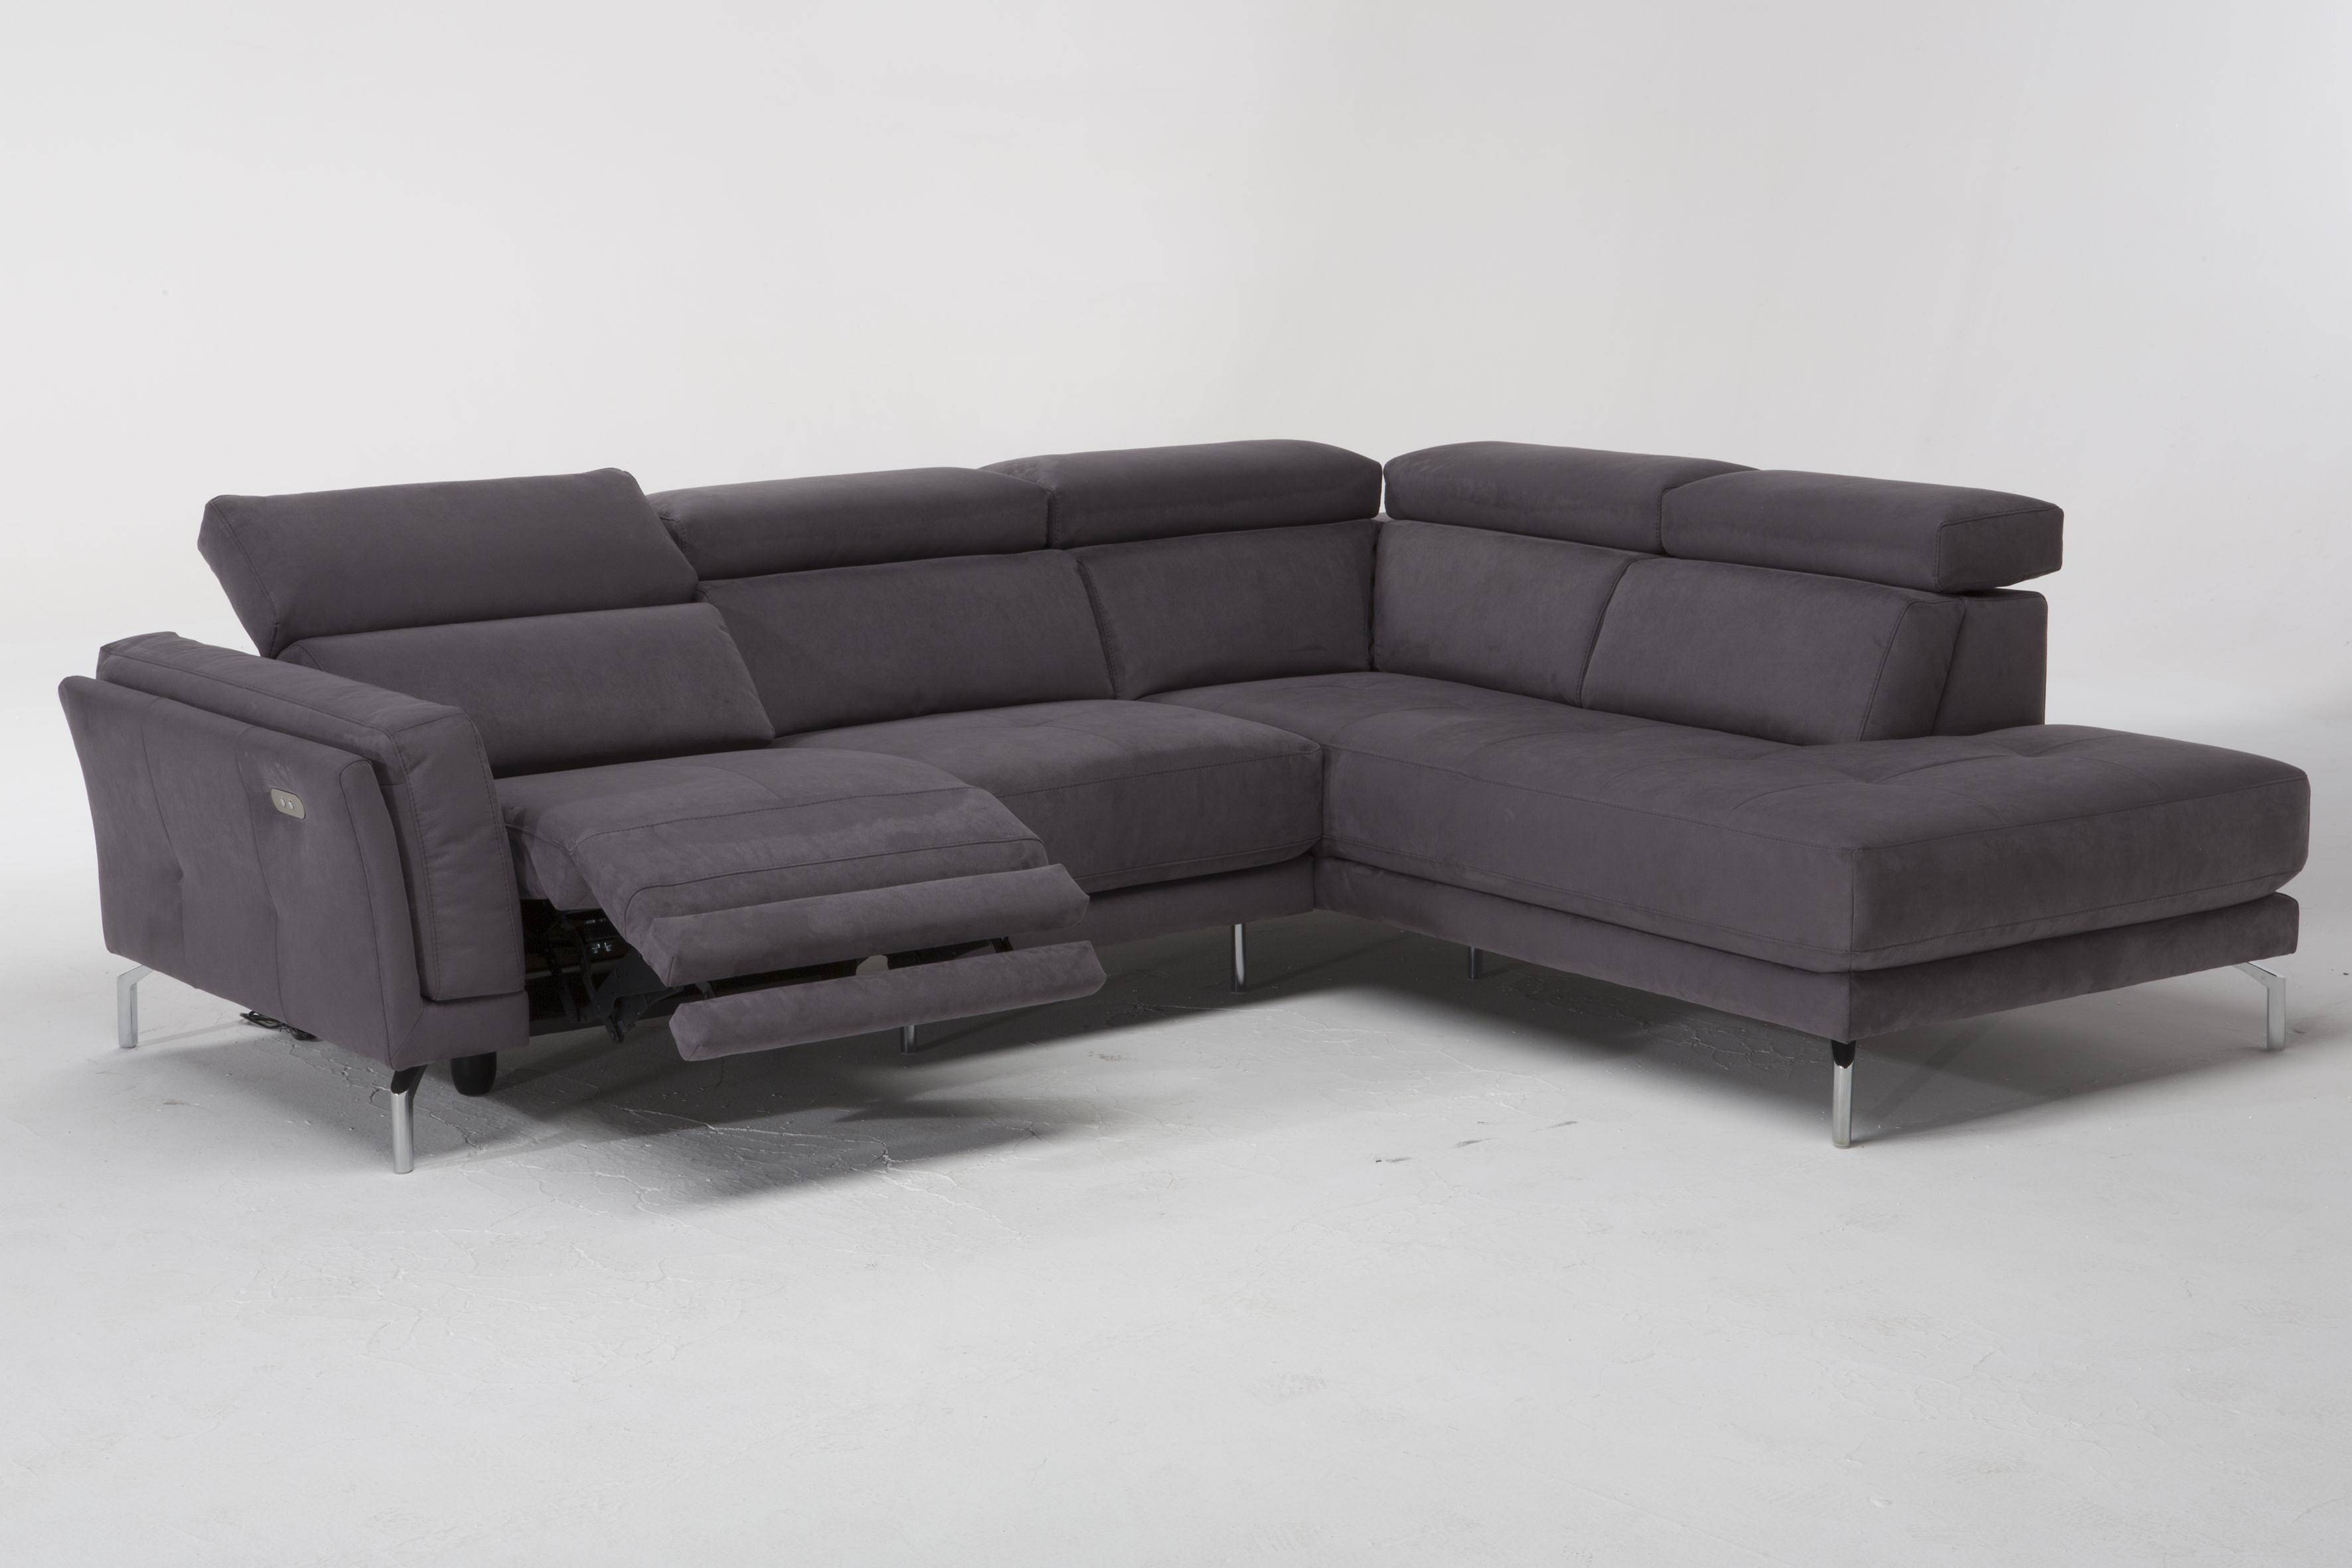 The Sofa Group – Sofas, Sofa Beds, Corner Sofas And Oak Furniture throughout Corner Sofa And Swivel Chairs (Image 29 of 30)